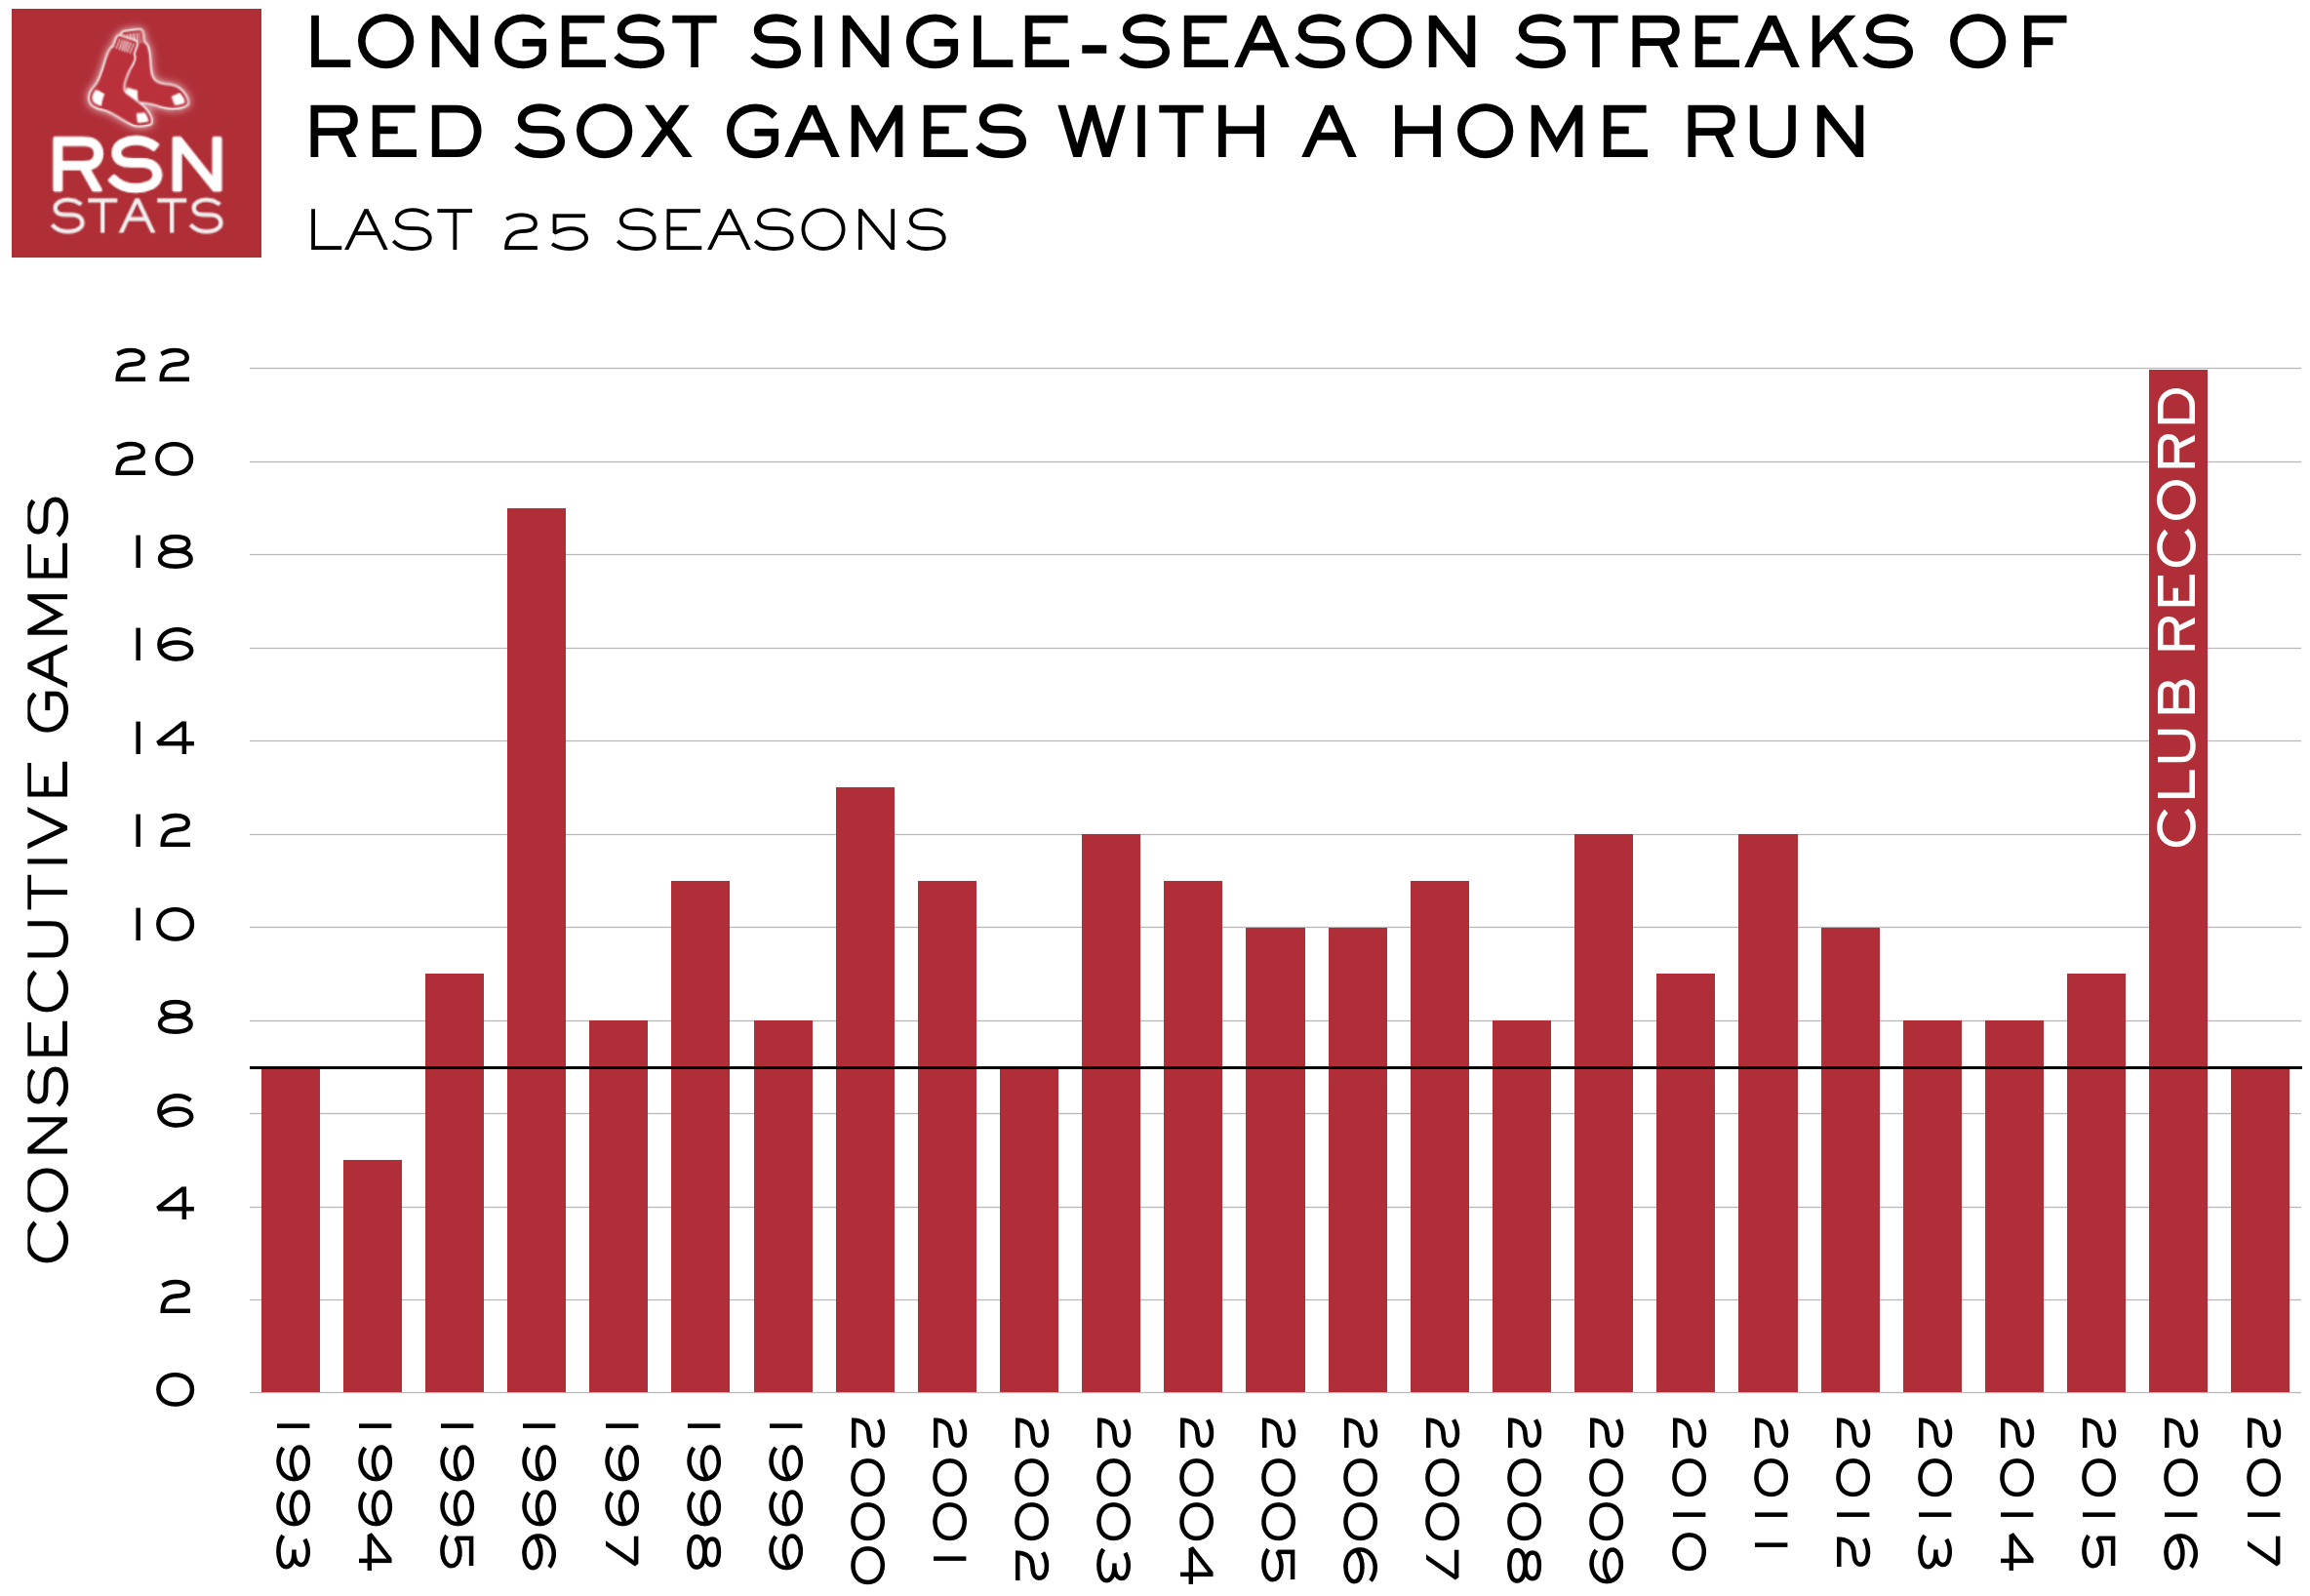 Red sox hr streak at 15 year low rsnstats ccuart Image collections